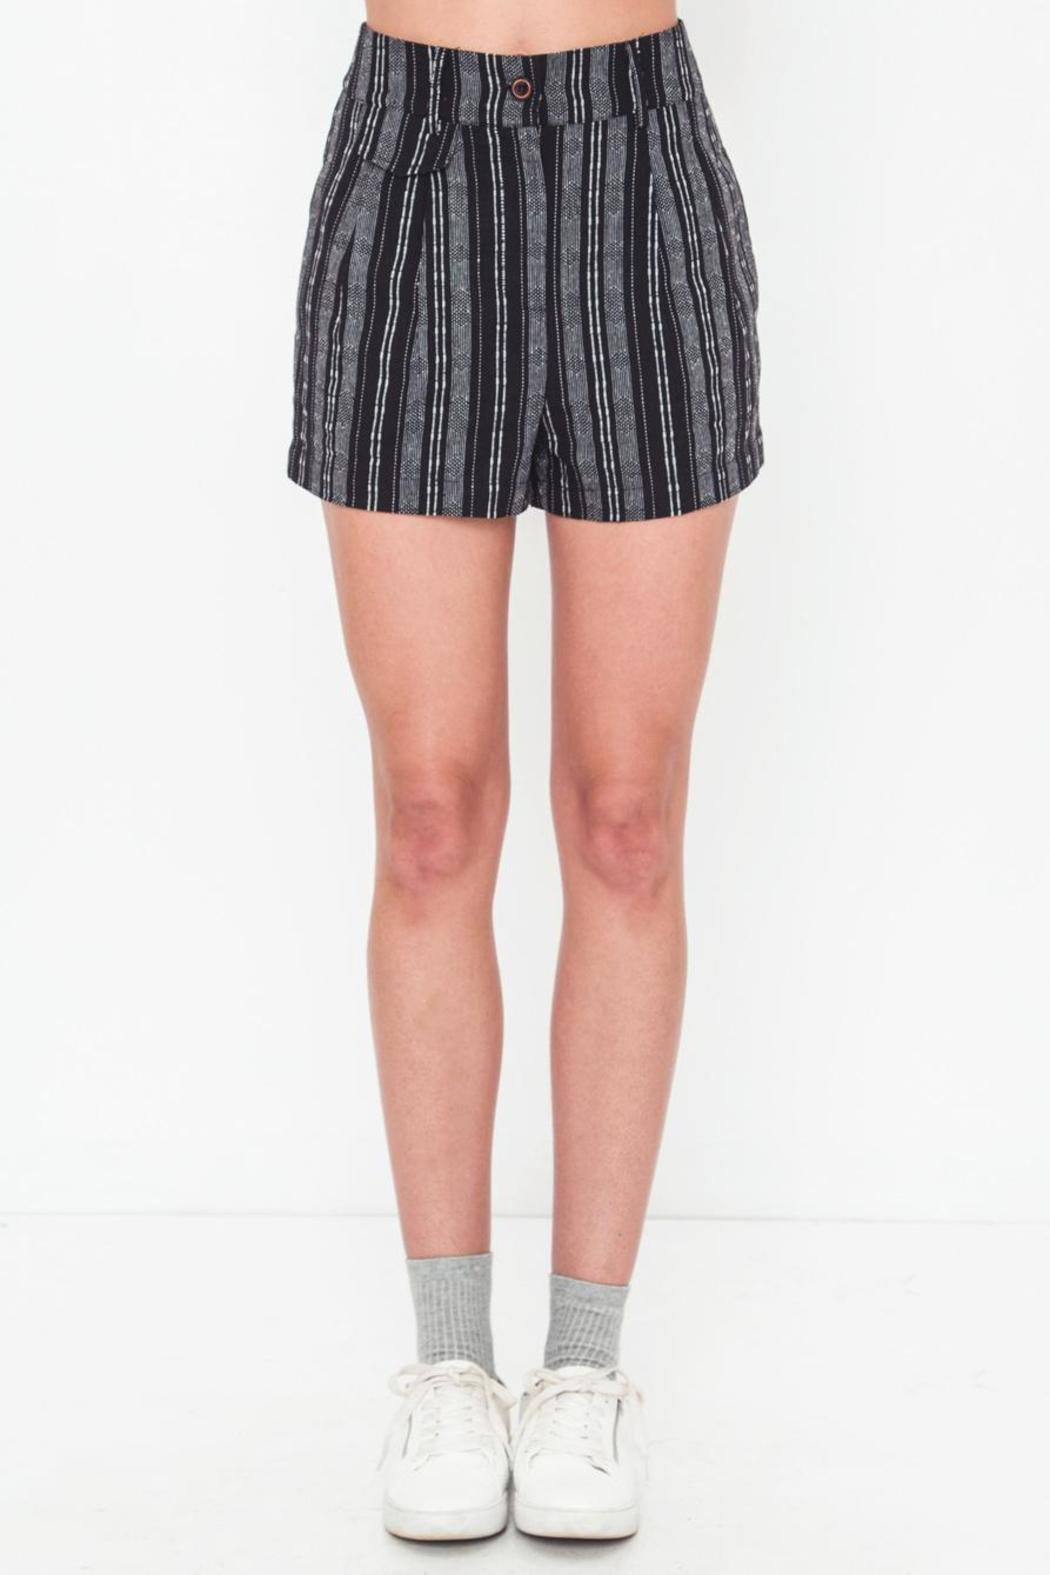 Movint Black High-Waist Short - Main Image